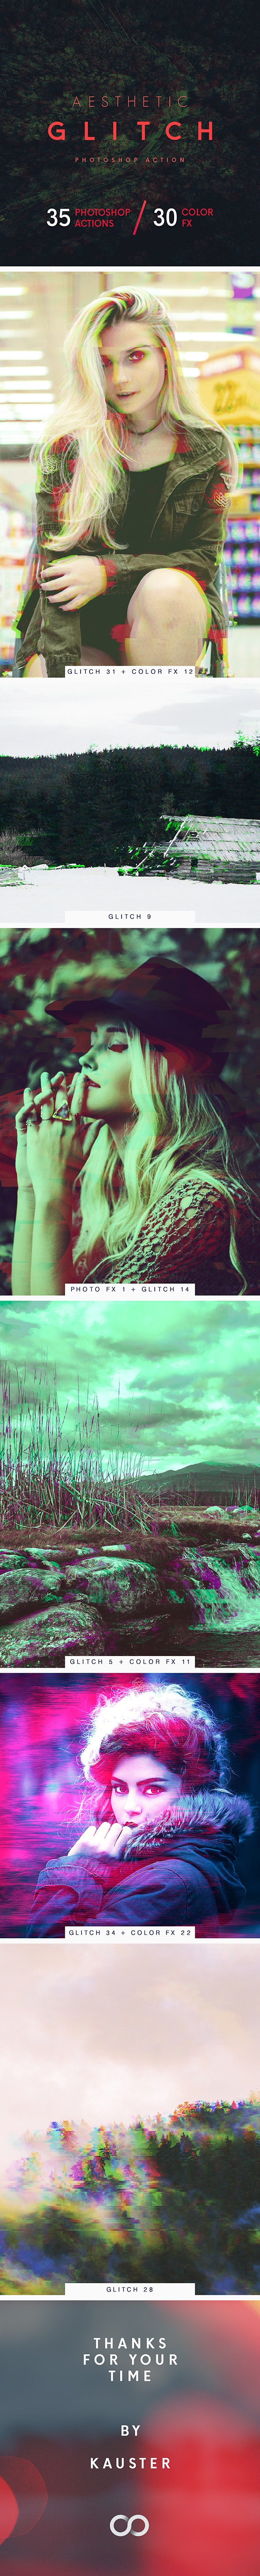 Aesthetic Glitch - Photoshop Action - Photo Effects Actions